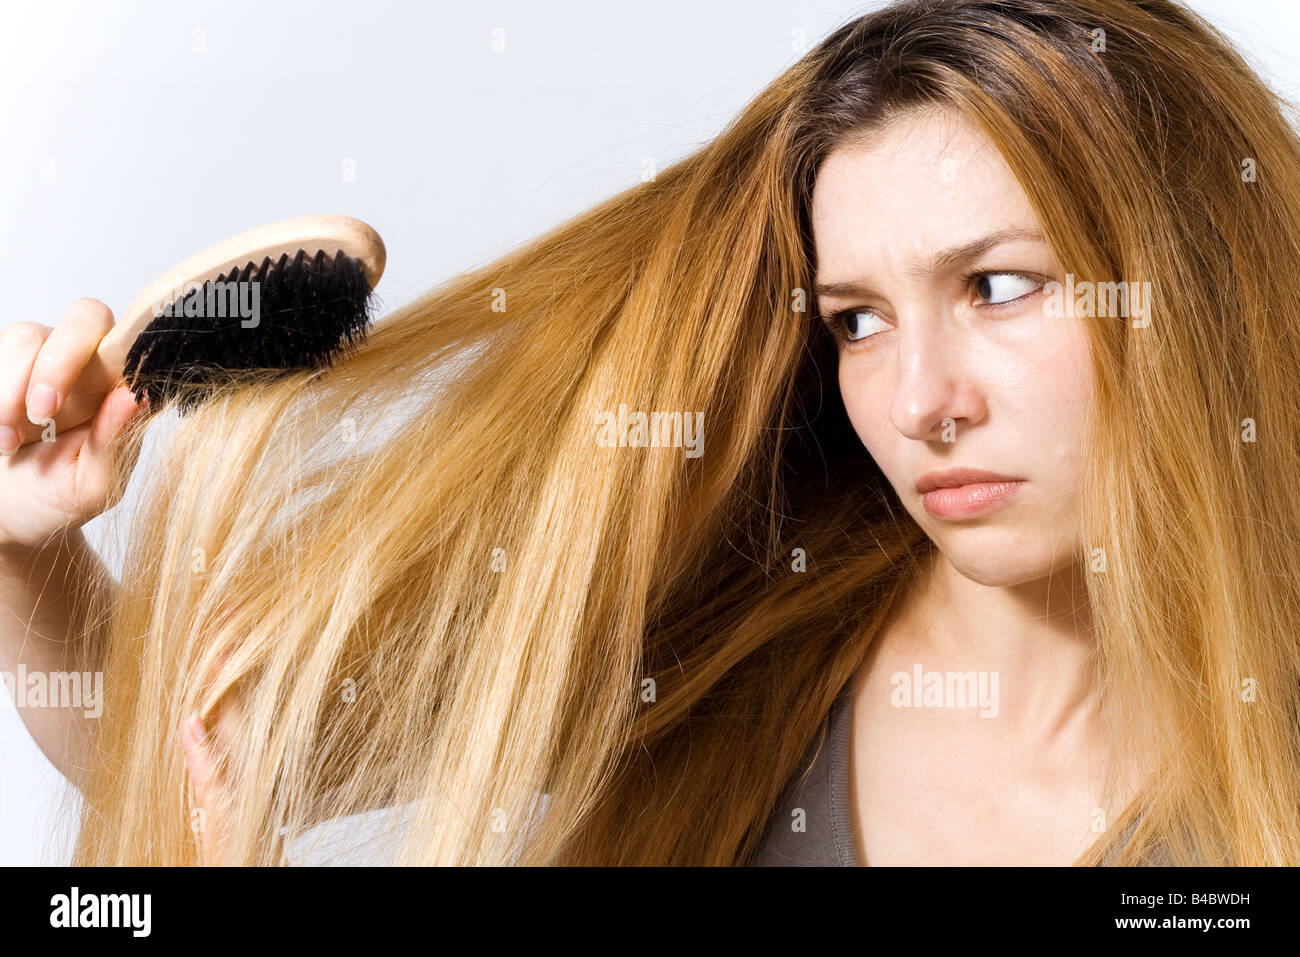 Young woman with hairbrush worried by her tangled hair - Stock Image